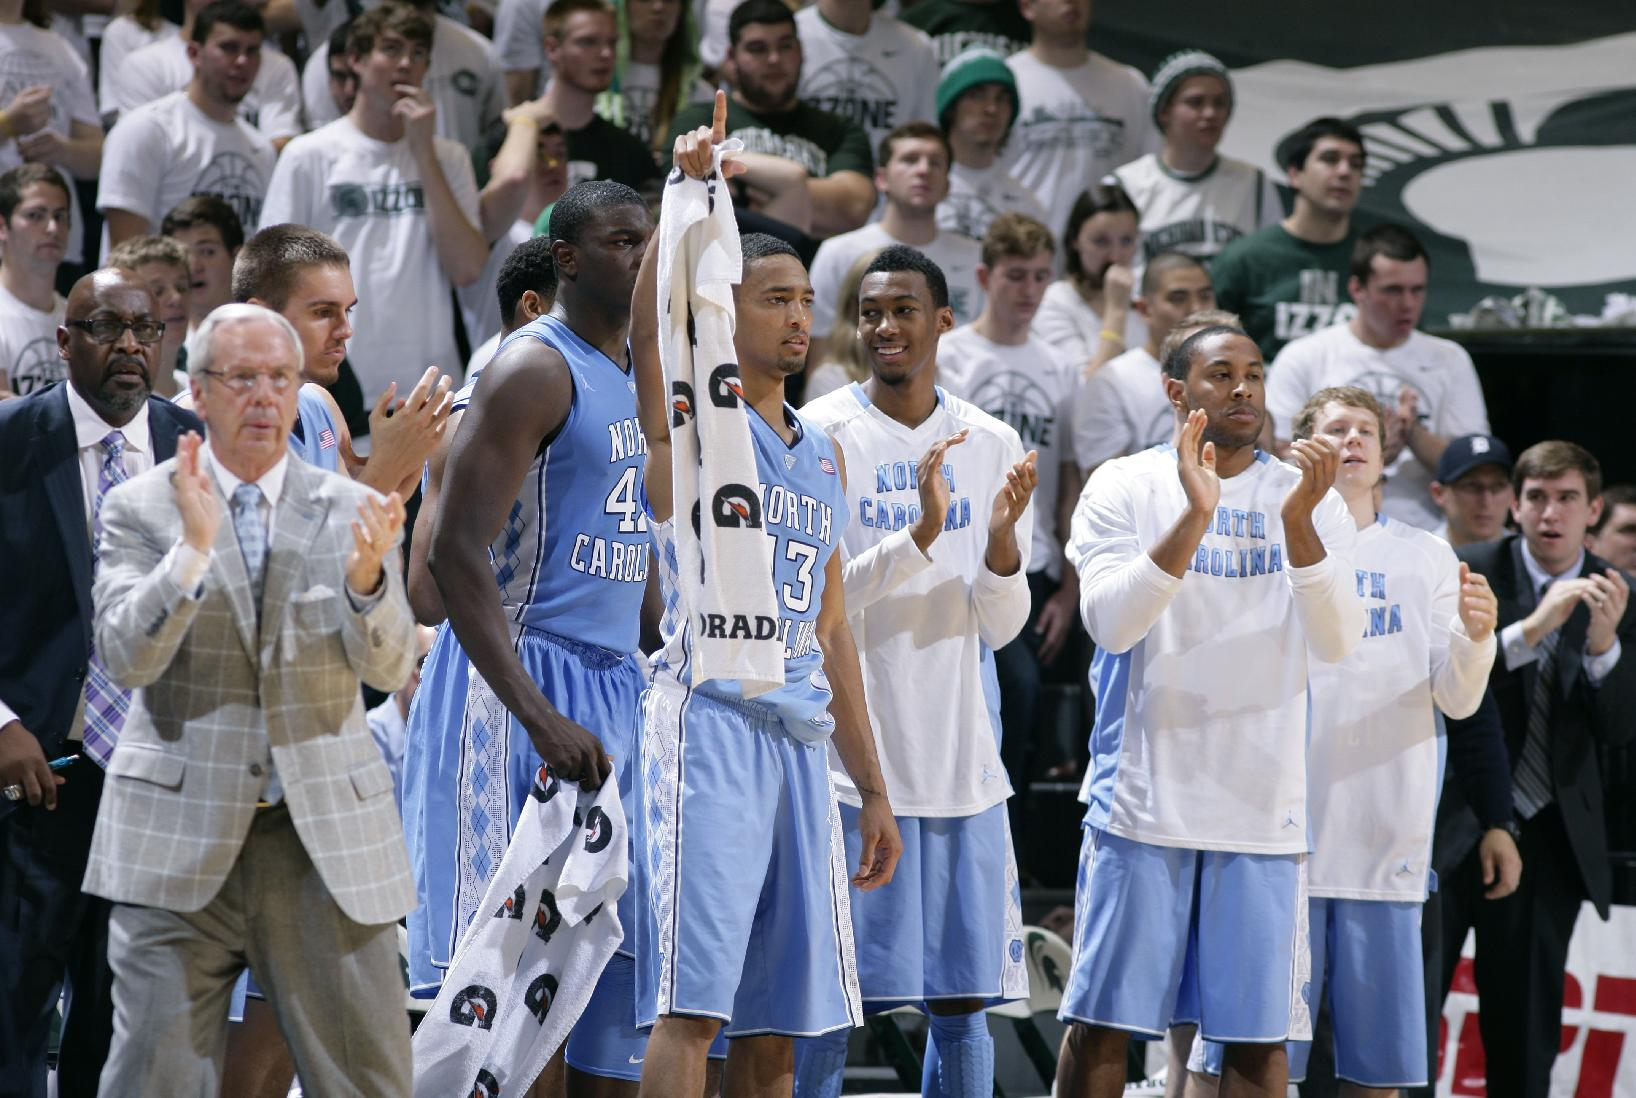 The North Carolina bench celebrates late in the game during the second half of an NCAA college basketball game against Michigan State, Wednesday, Dec. 4, 2013, in East Lansing, Mich. North Carolina won 79-65